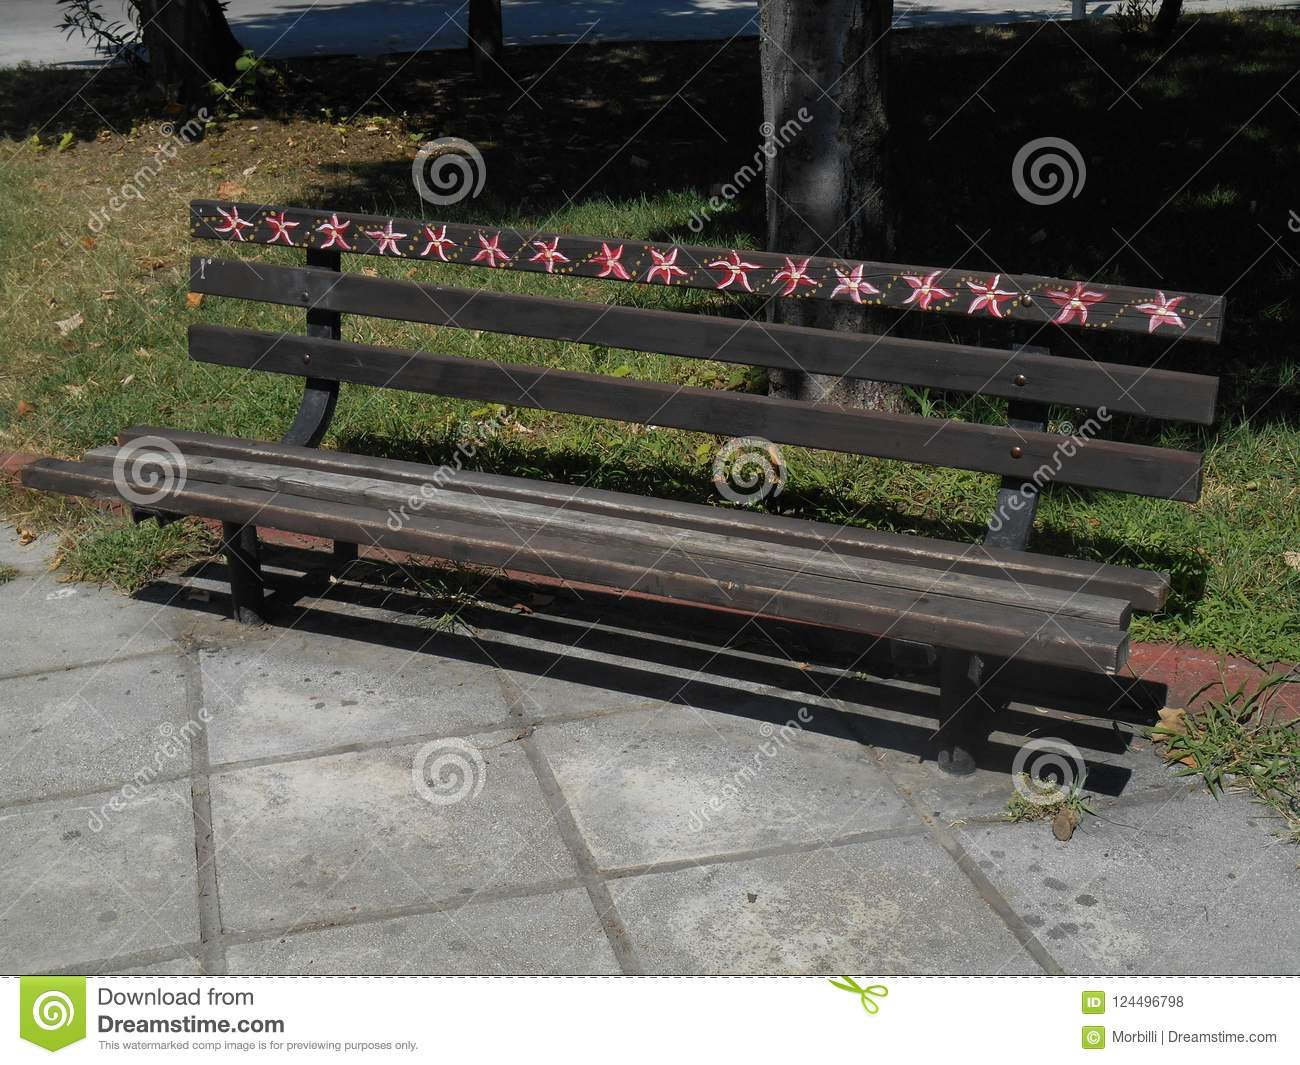 Brown bench painted in little red and white seashells